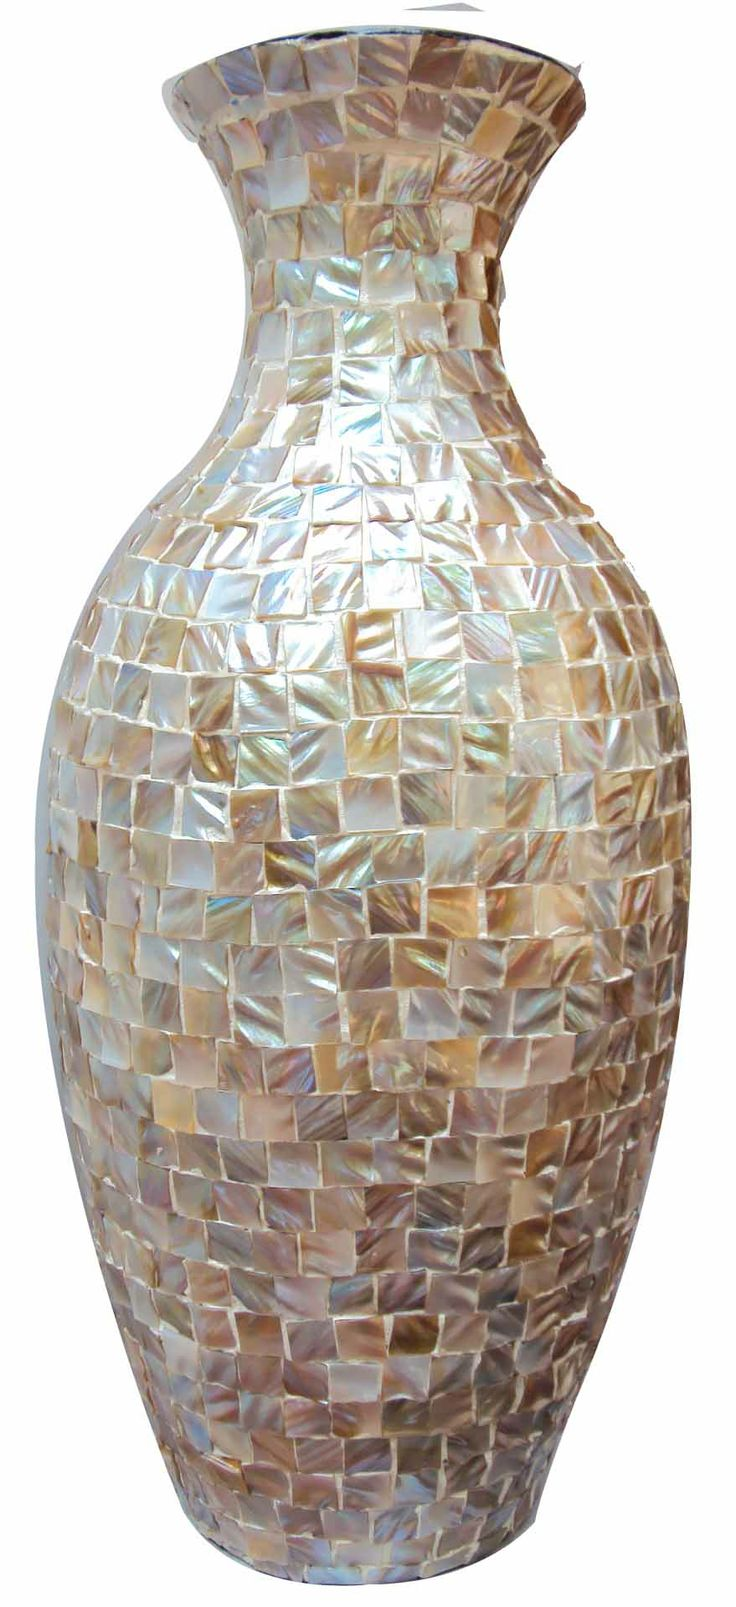 7 best mother of pearl vase images on pinterest flower vases bamboo lacquer vase with mother of pearl mosaiced and lacquer painting coated reviewsmspy